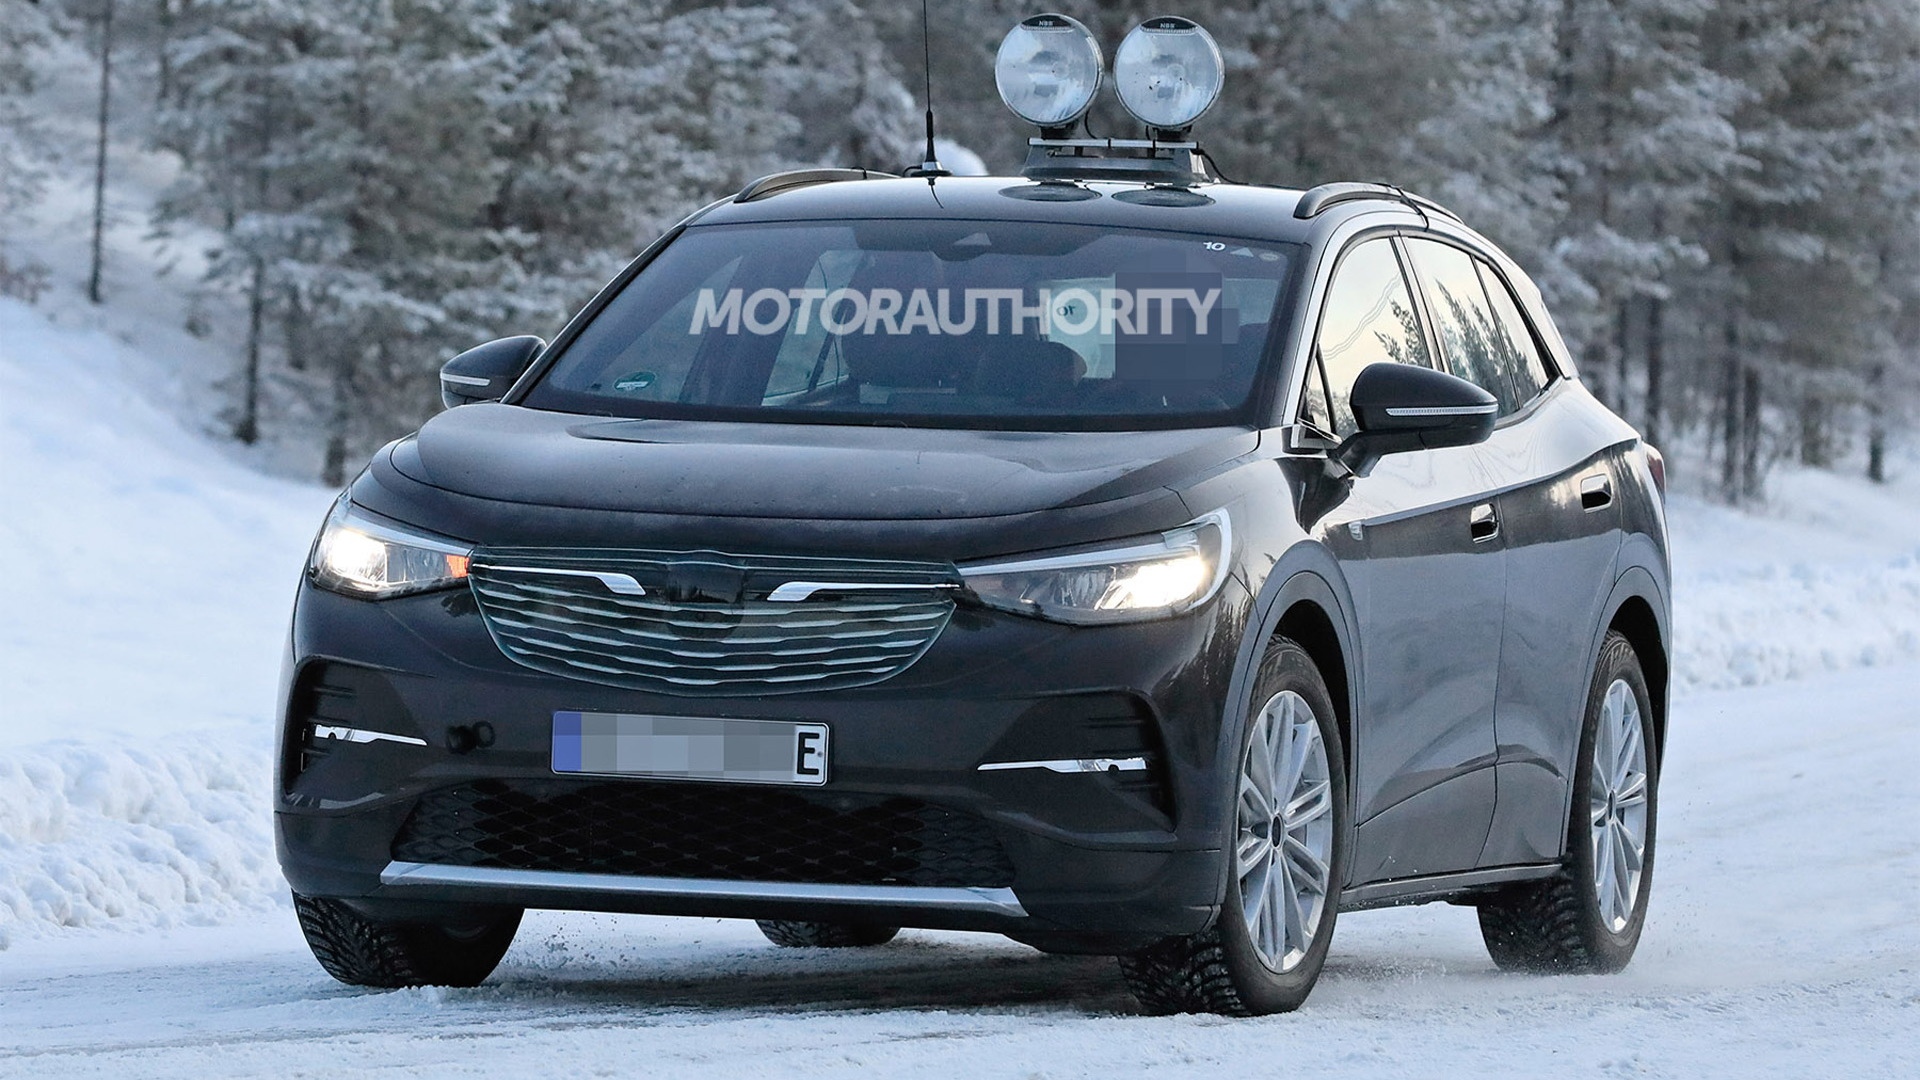 2021 Volkswagen ID 4 (Crozz) spy shots - Photo credit: S. Baldauf/SB-Medien